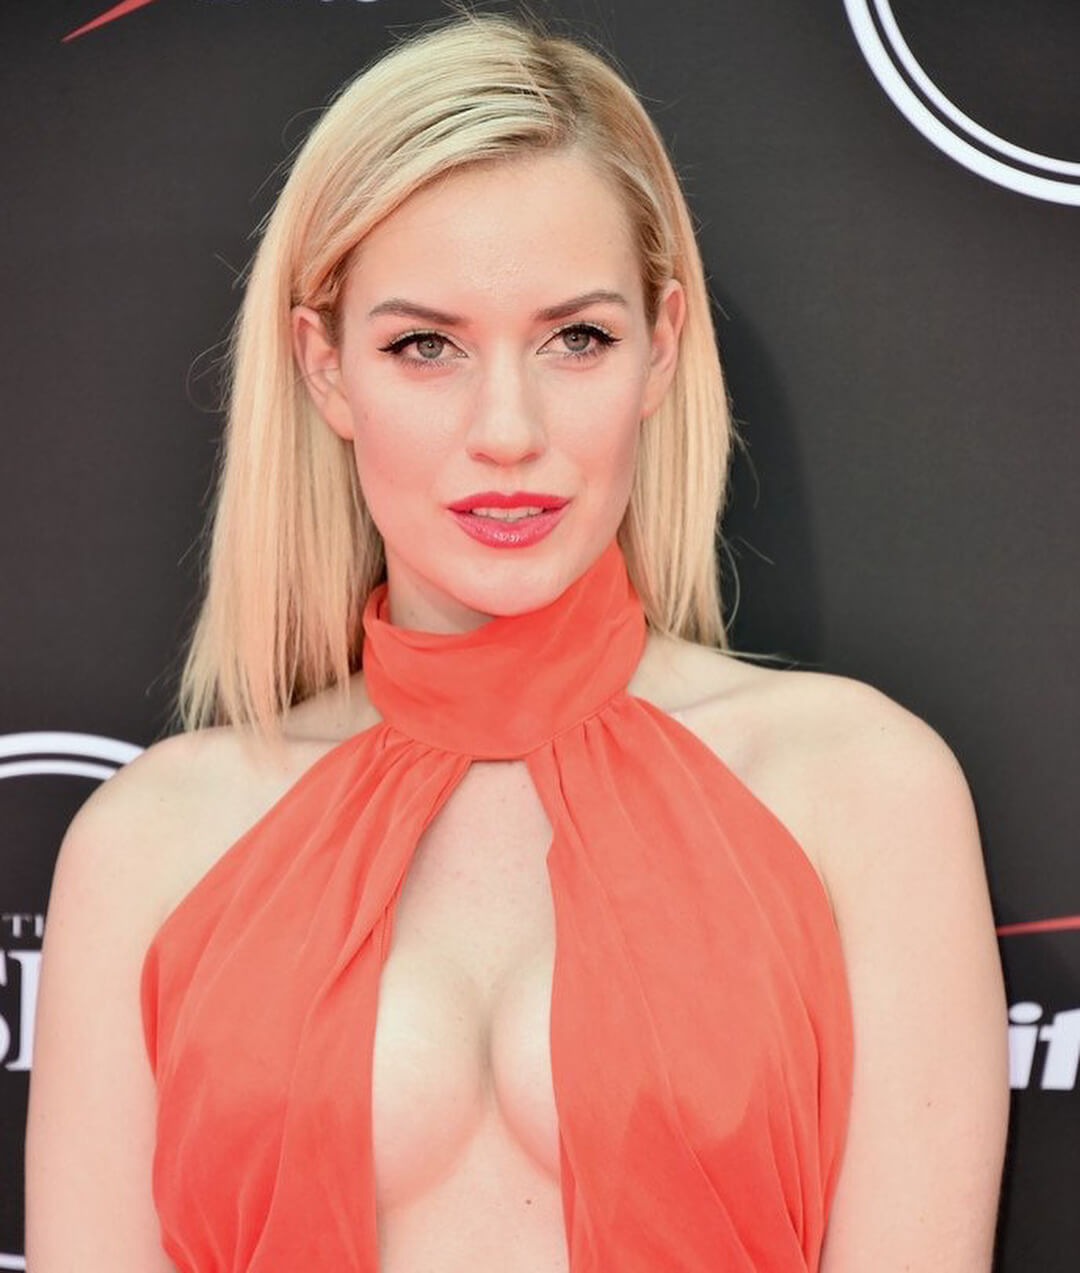 paige spiranac cleavage pictures